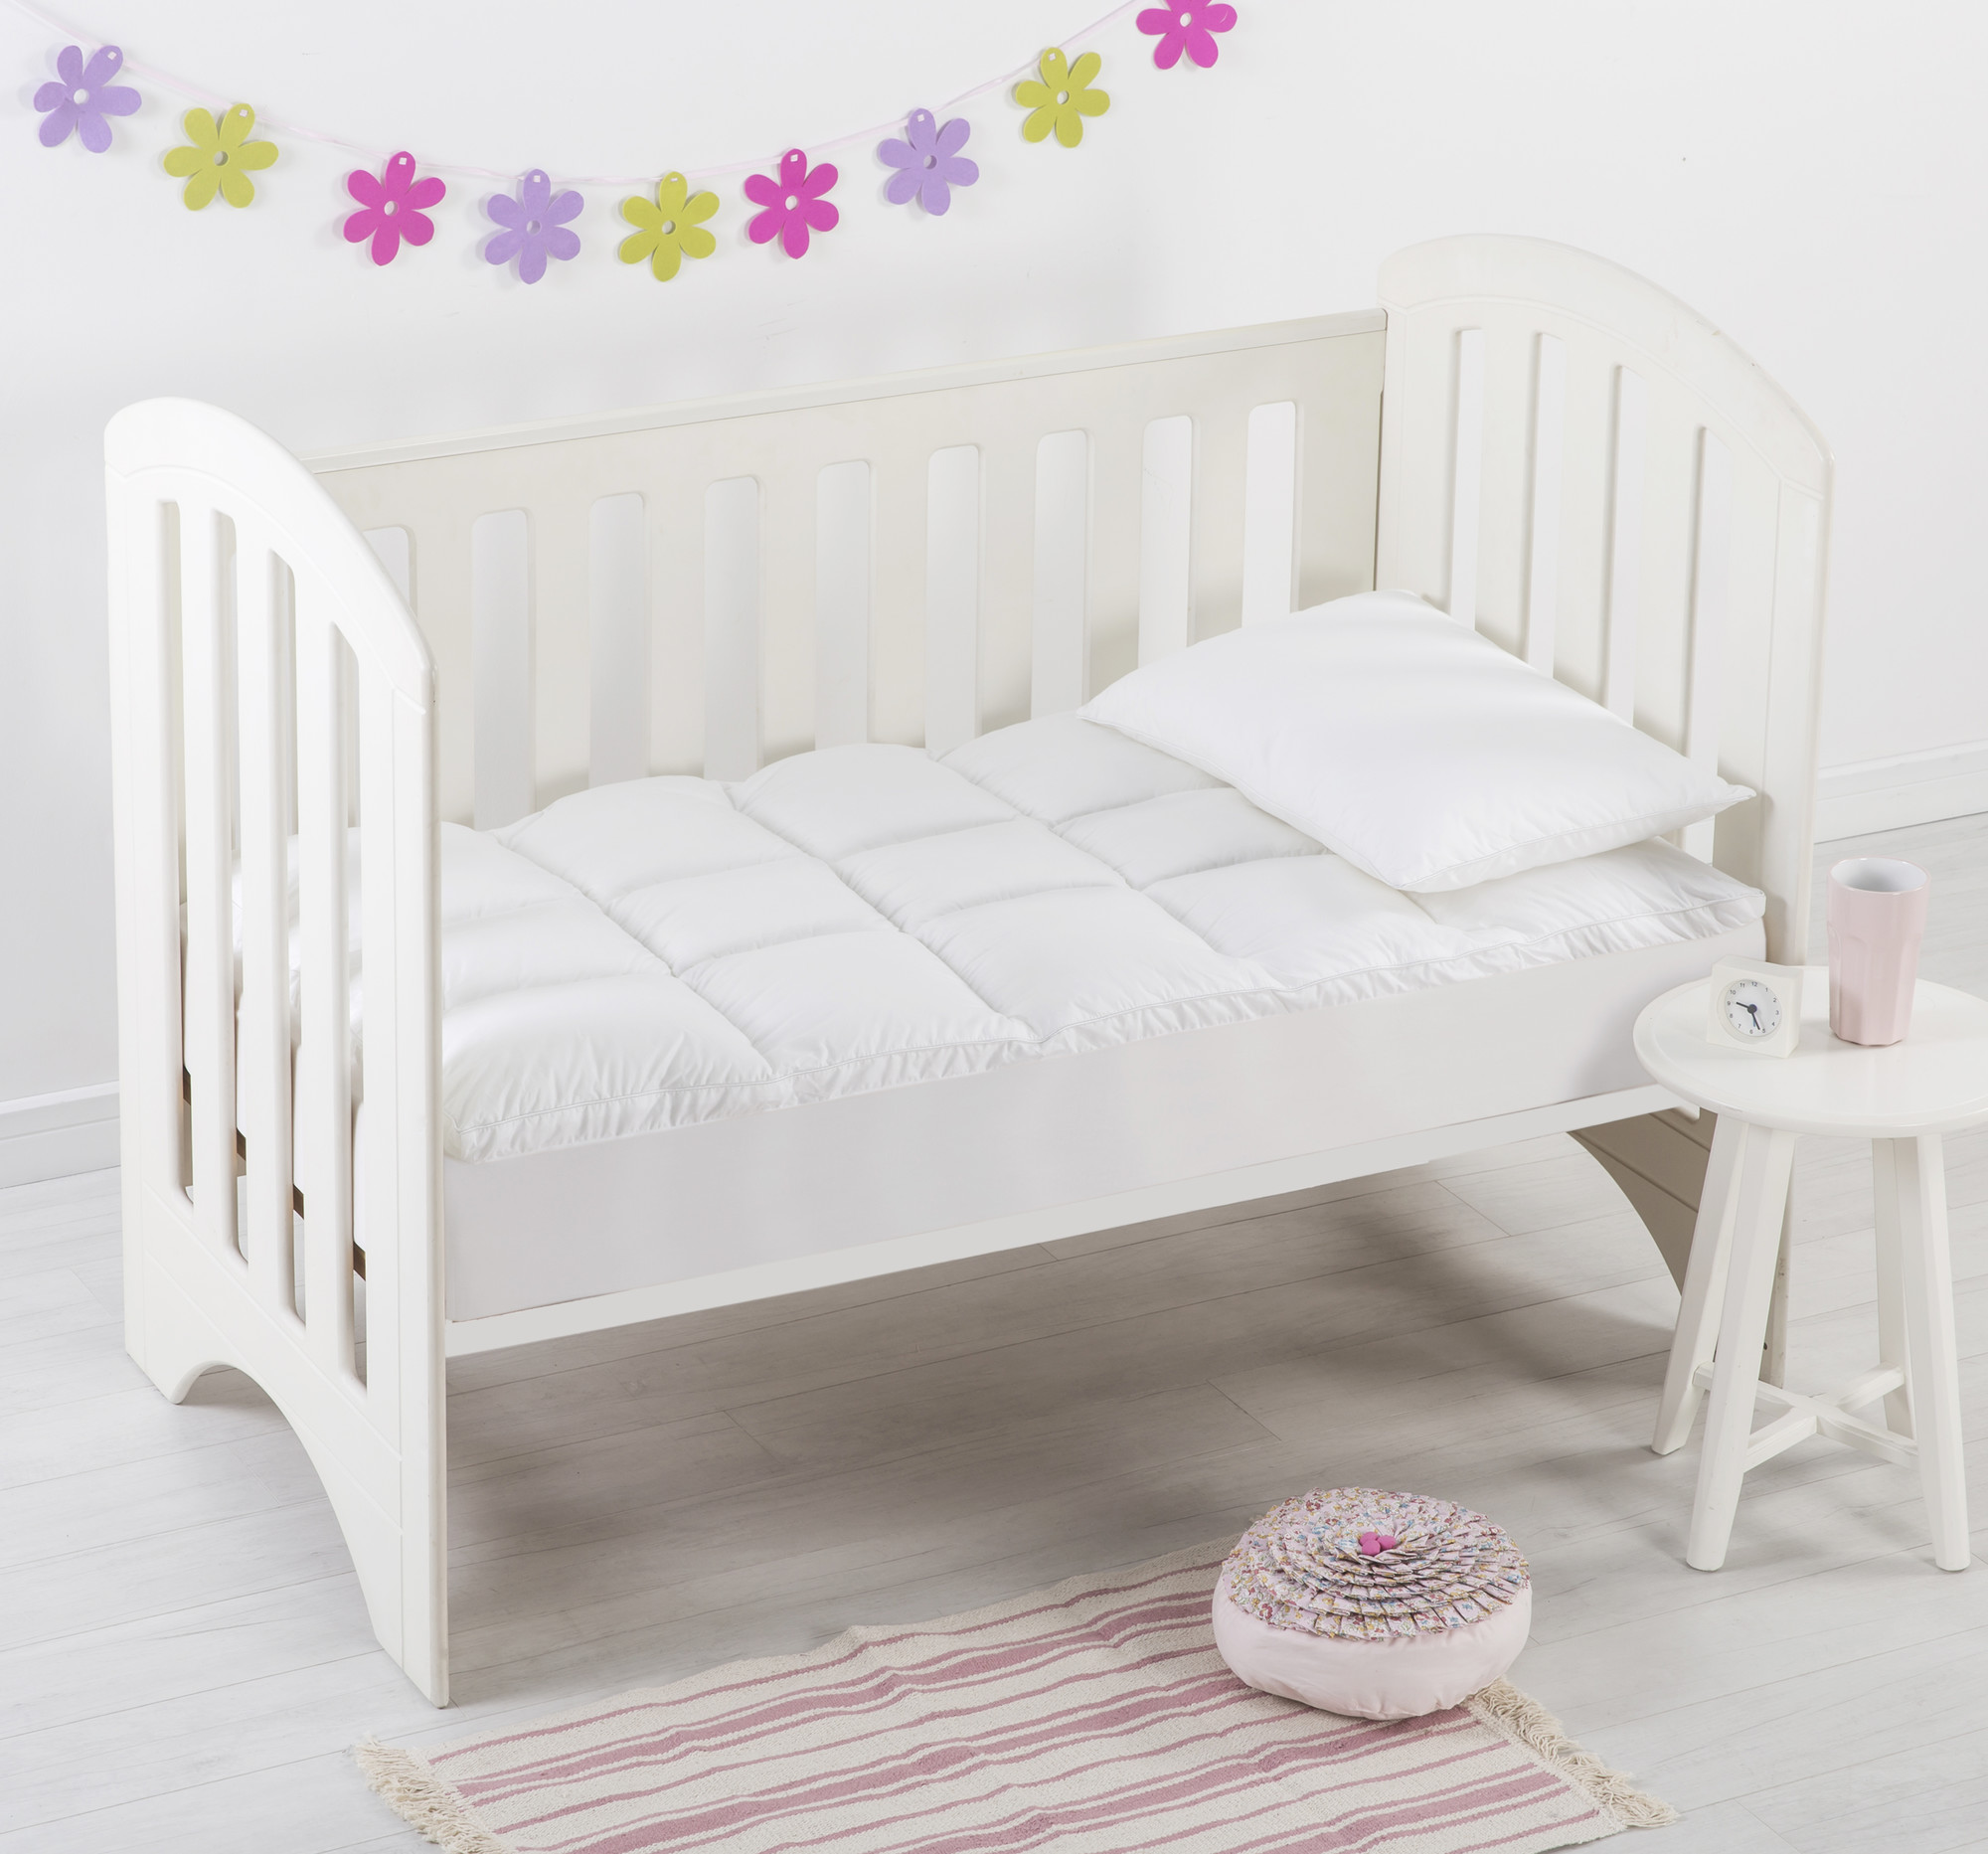 Standard Cot Mattress Size New Dreamaker Down Alternative Cot Size Mattress Topper